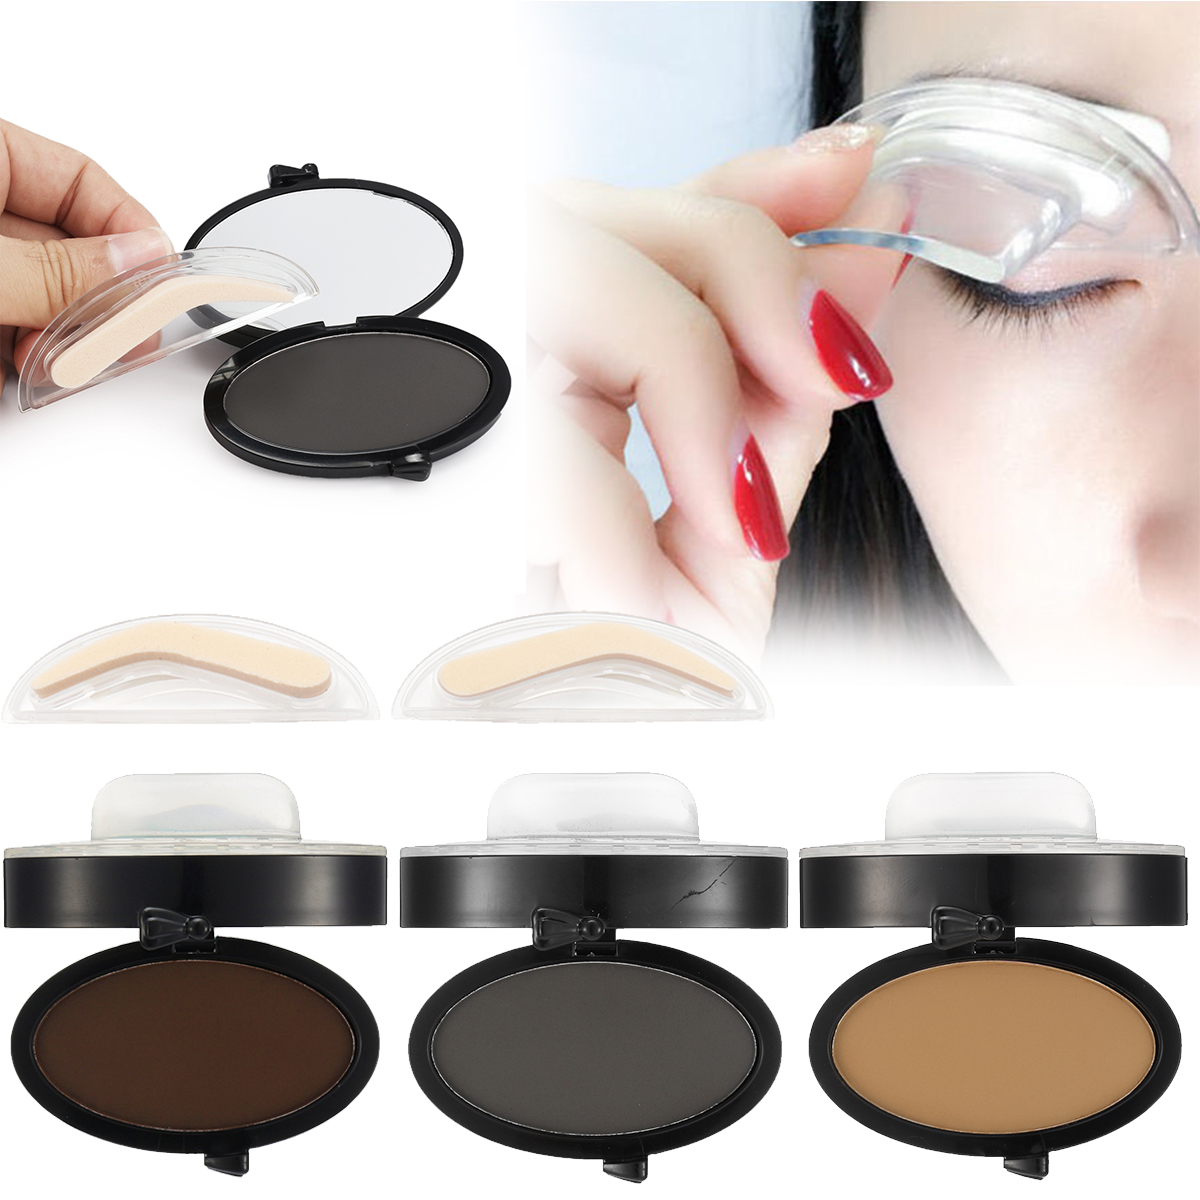 Beauty Essentials Eyebrow Enhancers Diligent Huamainli Eyebrow Template Stamp Sponge Stencils Eye Lazy Quick Makeup Tool Seal Cream